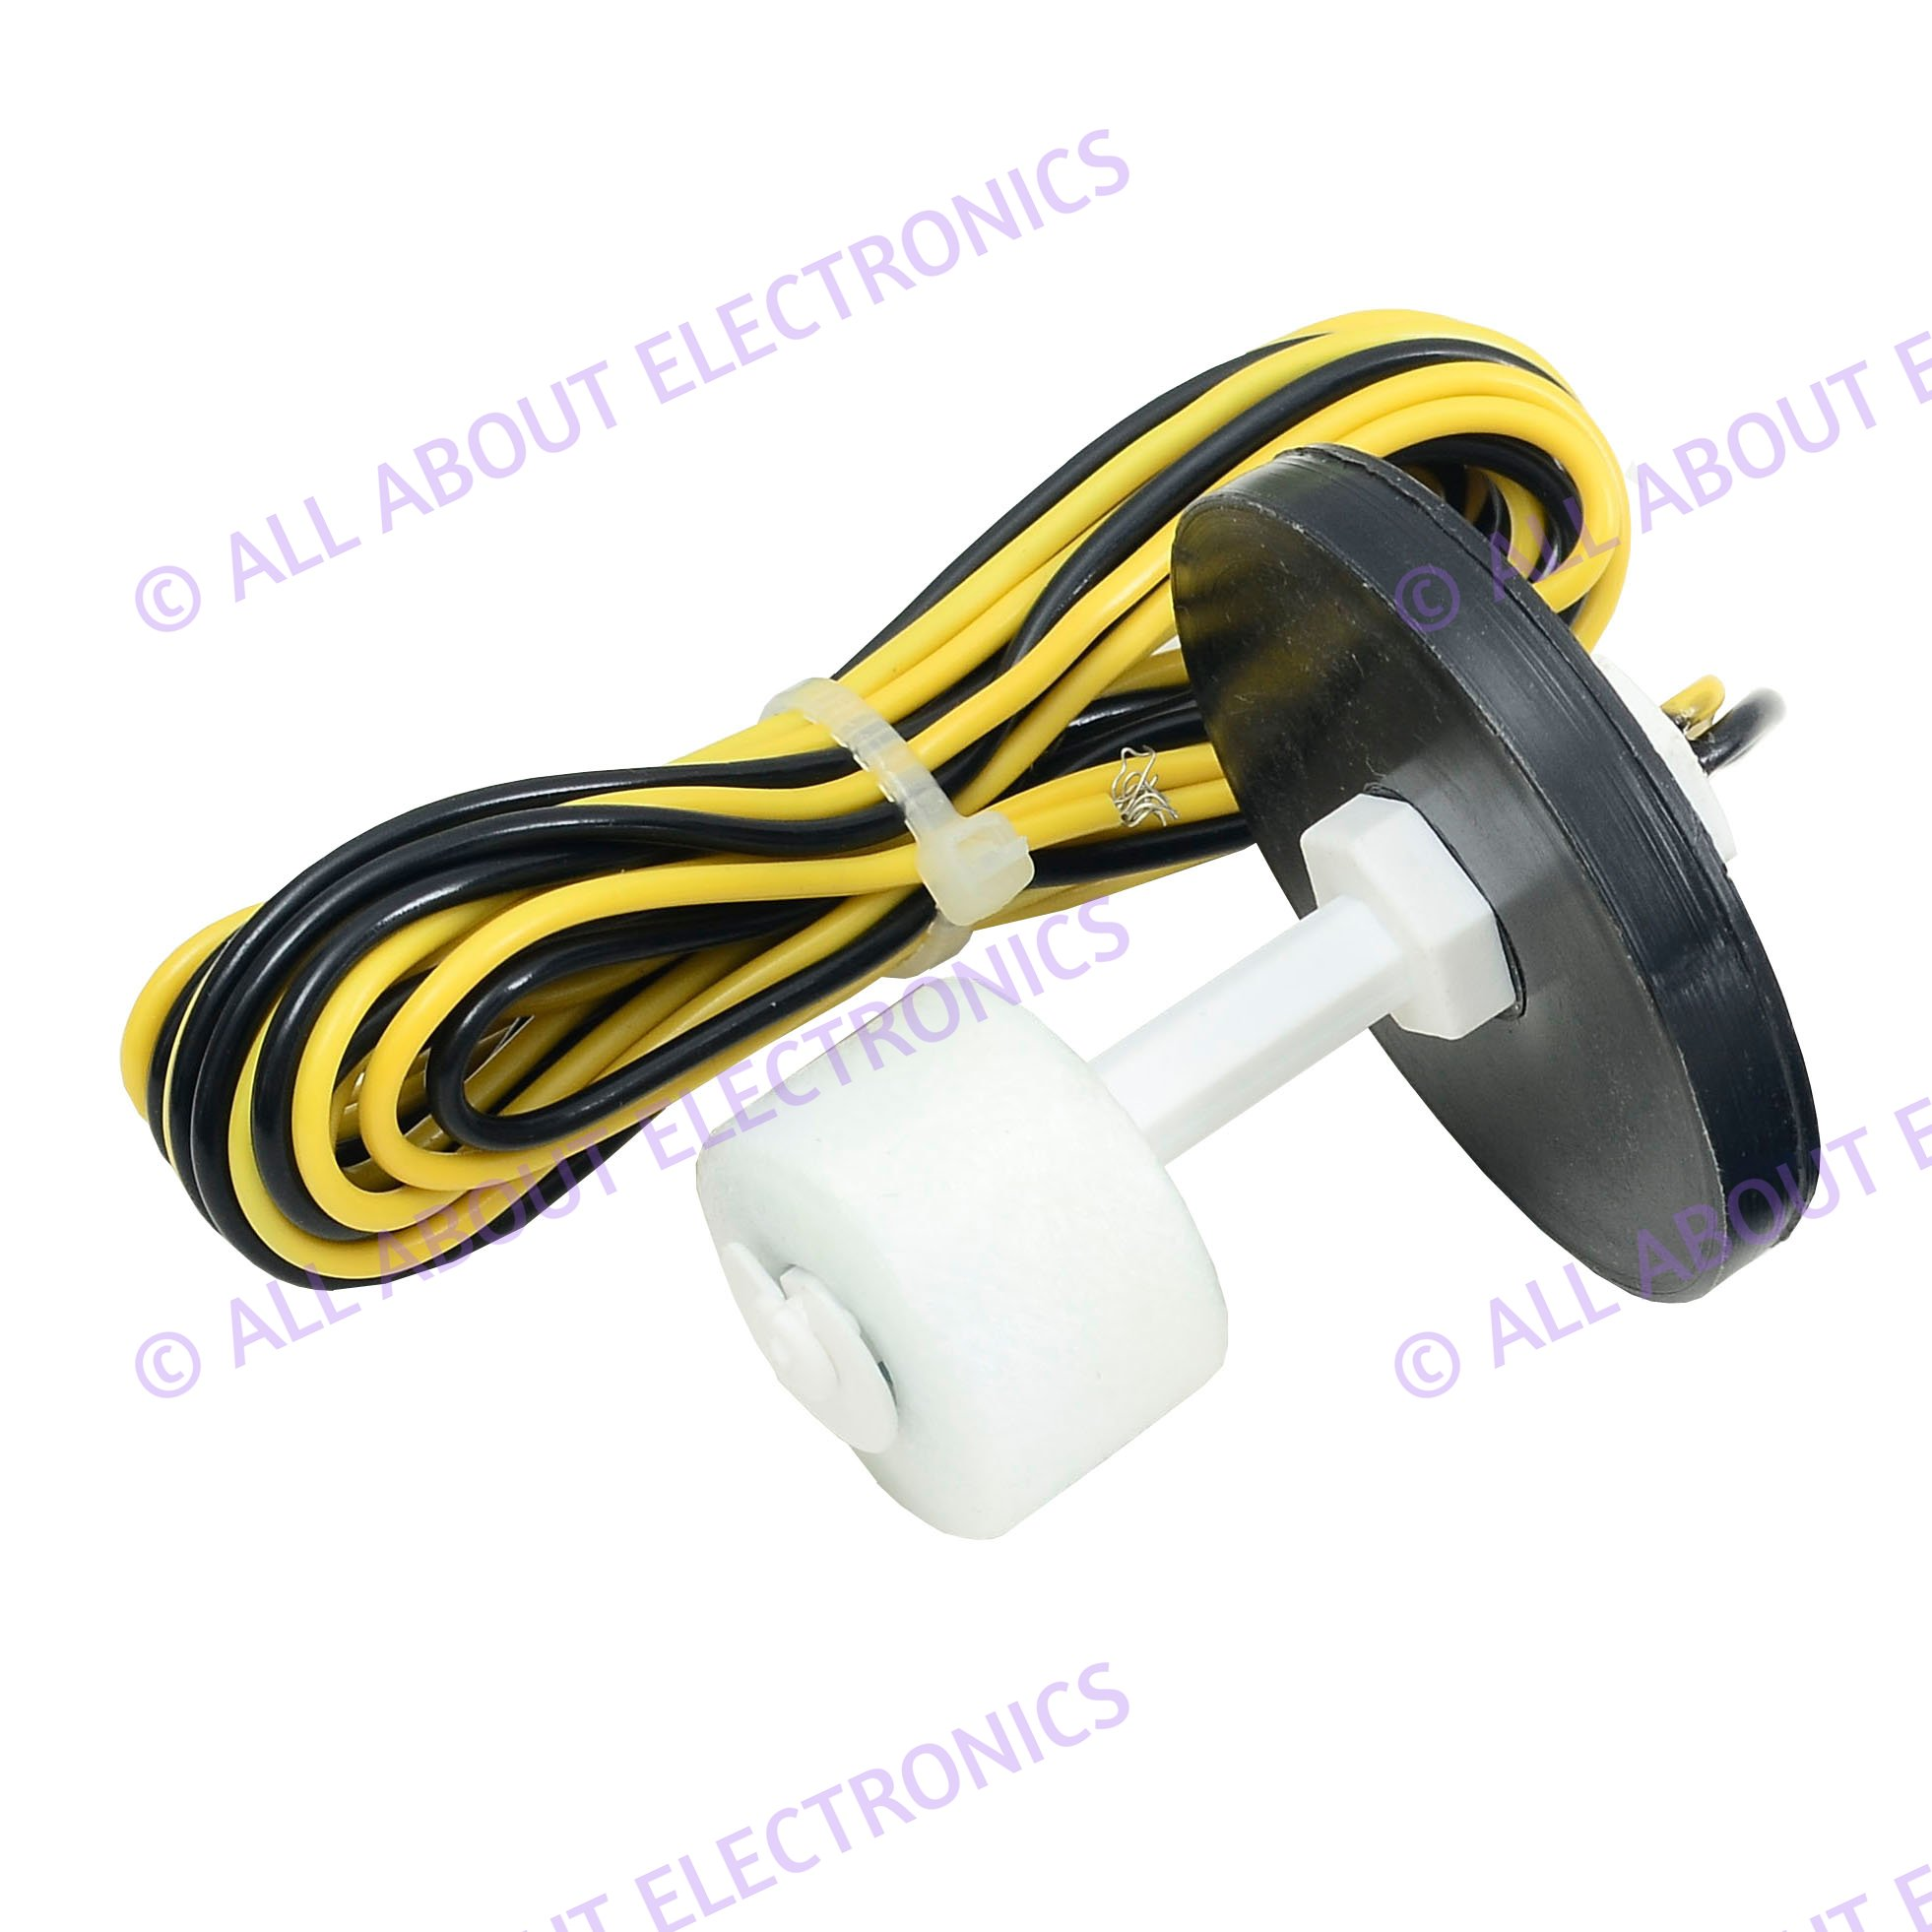 Best Rated In Sensors Helpful Customer Reviews The Pulselatching Circuit Above Can Be Connected To A Microcontroller All About Electronics Float Sensor Switch Water Level For Controller No